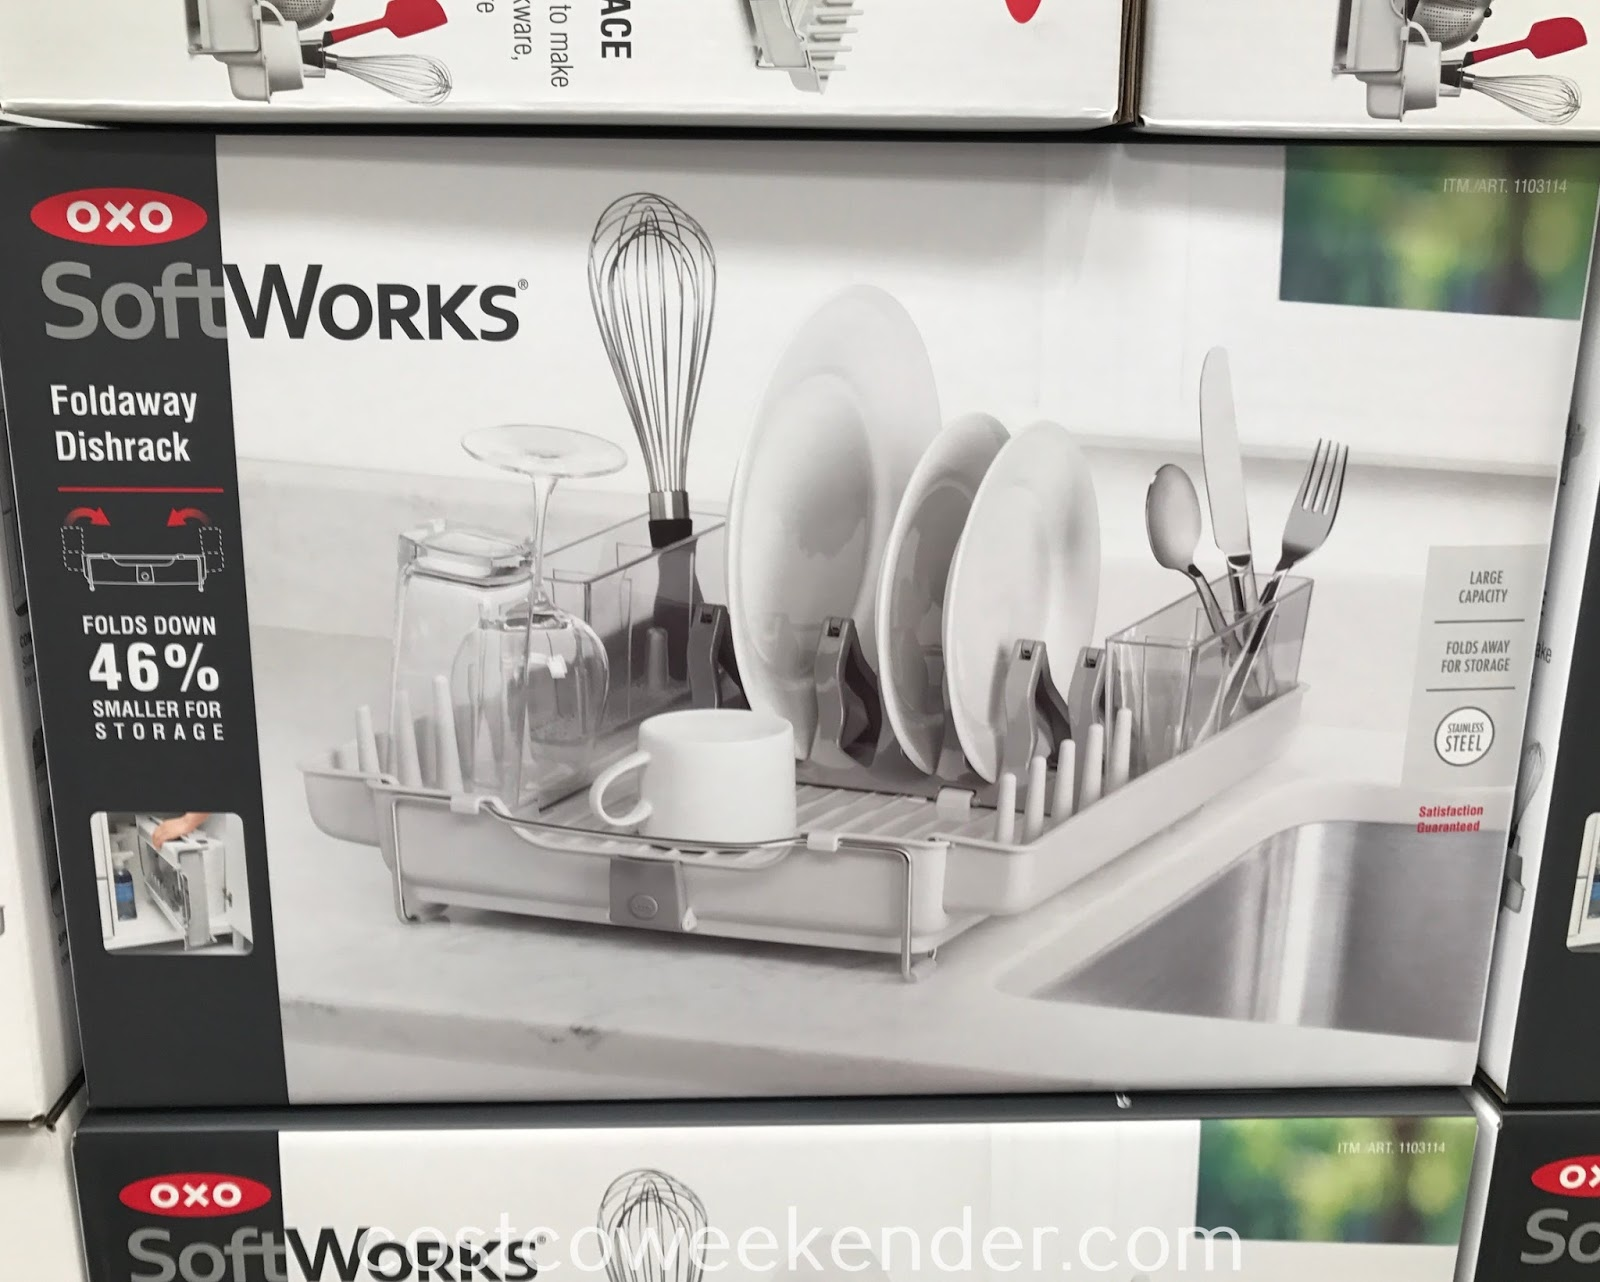 Have a place to dry your dishes with the Oxo SoftWorks Foldaway Dishrack